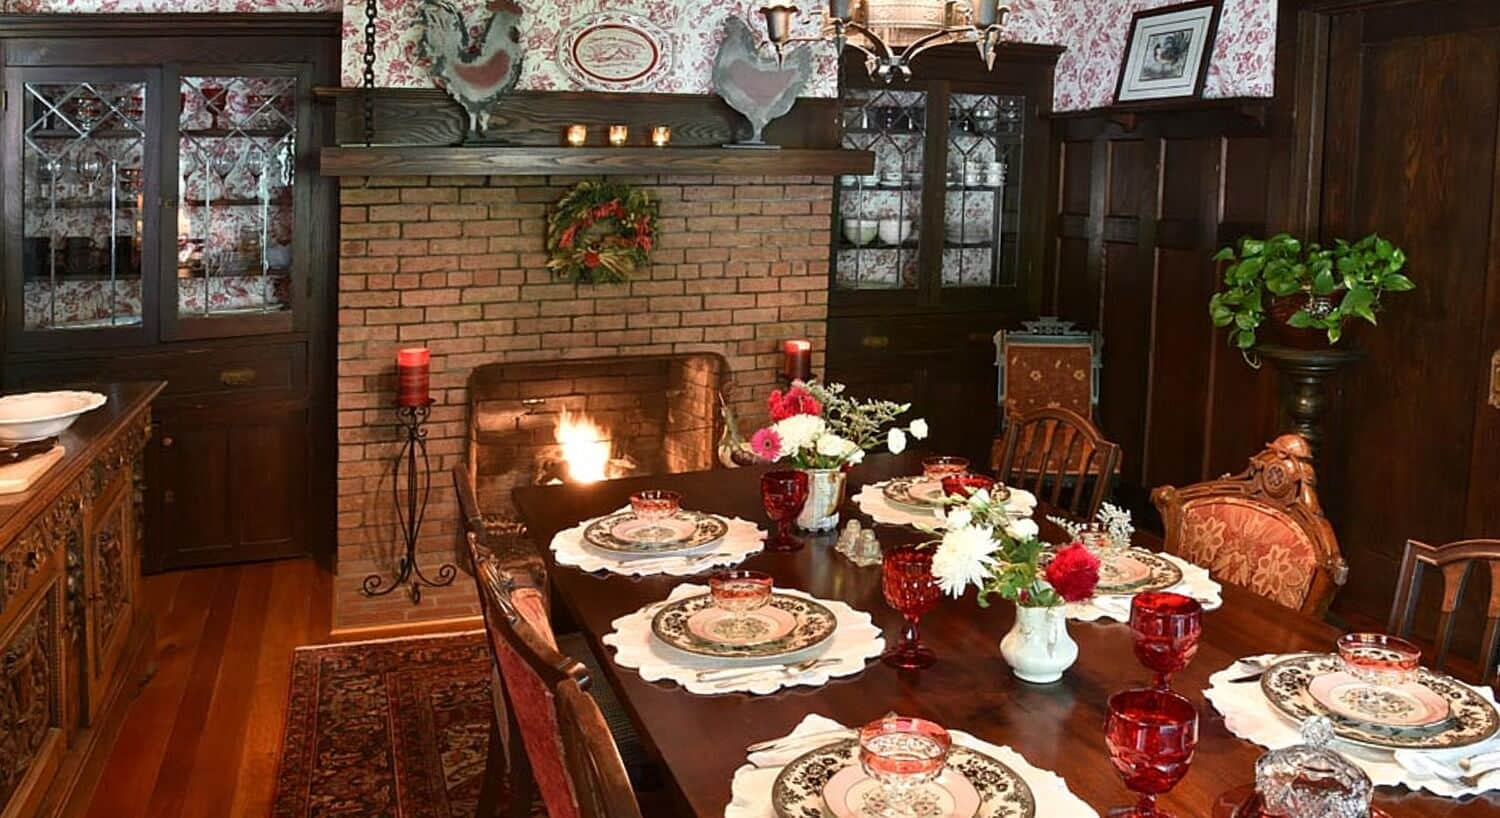 Large brown dining room table set with black and white china and red wine glasses next to a brick fireplace with fire lit